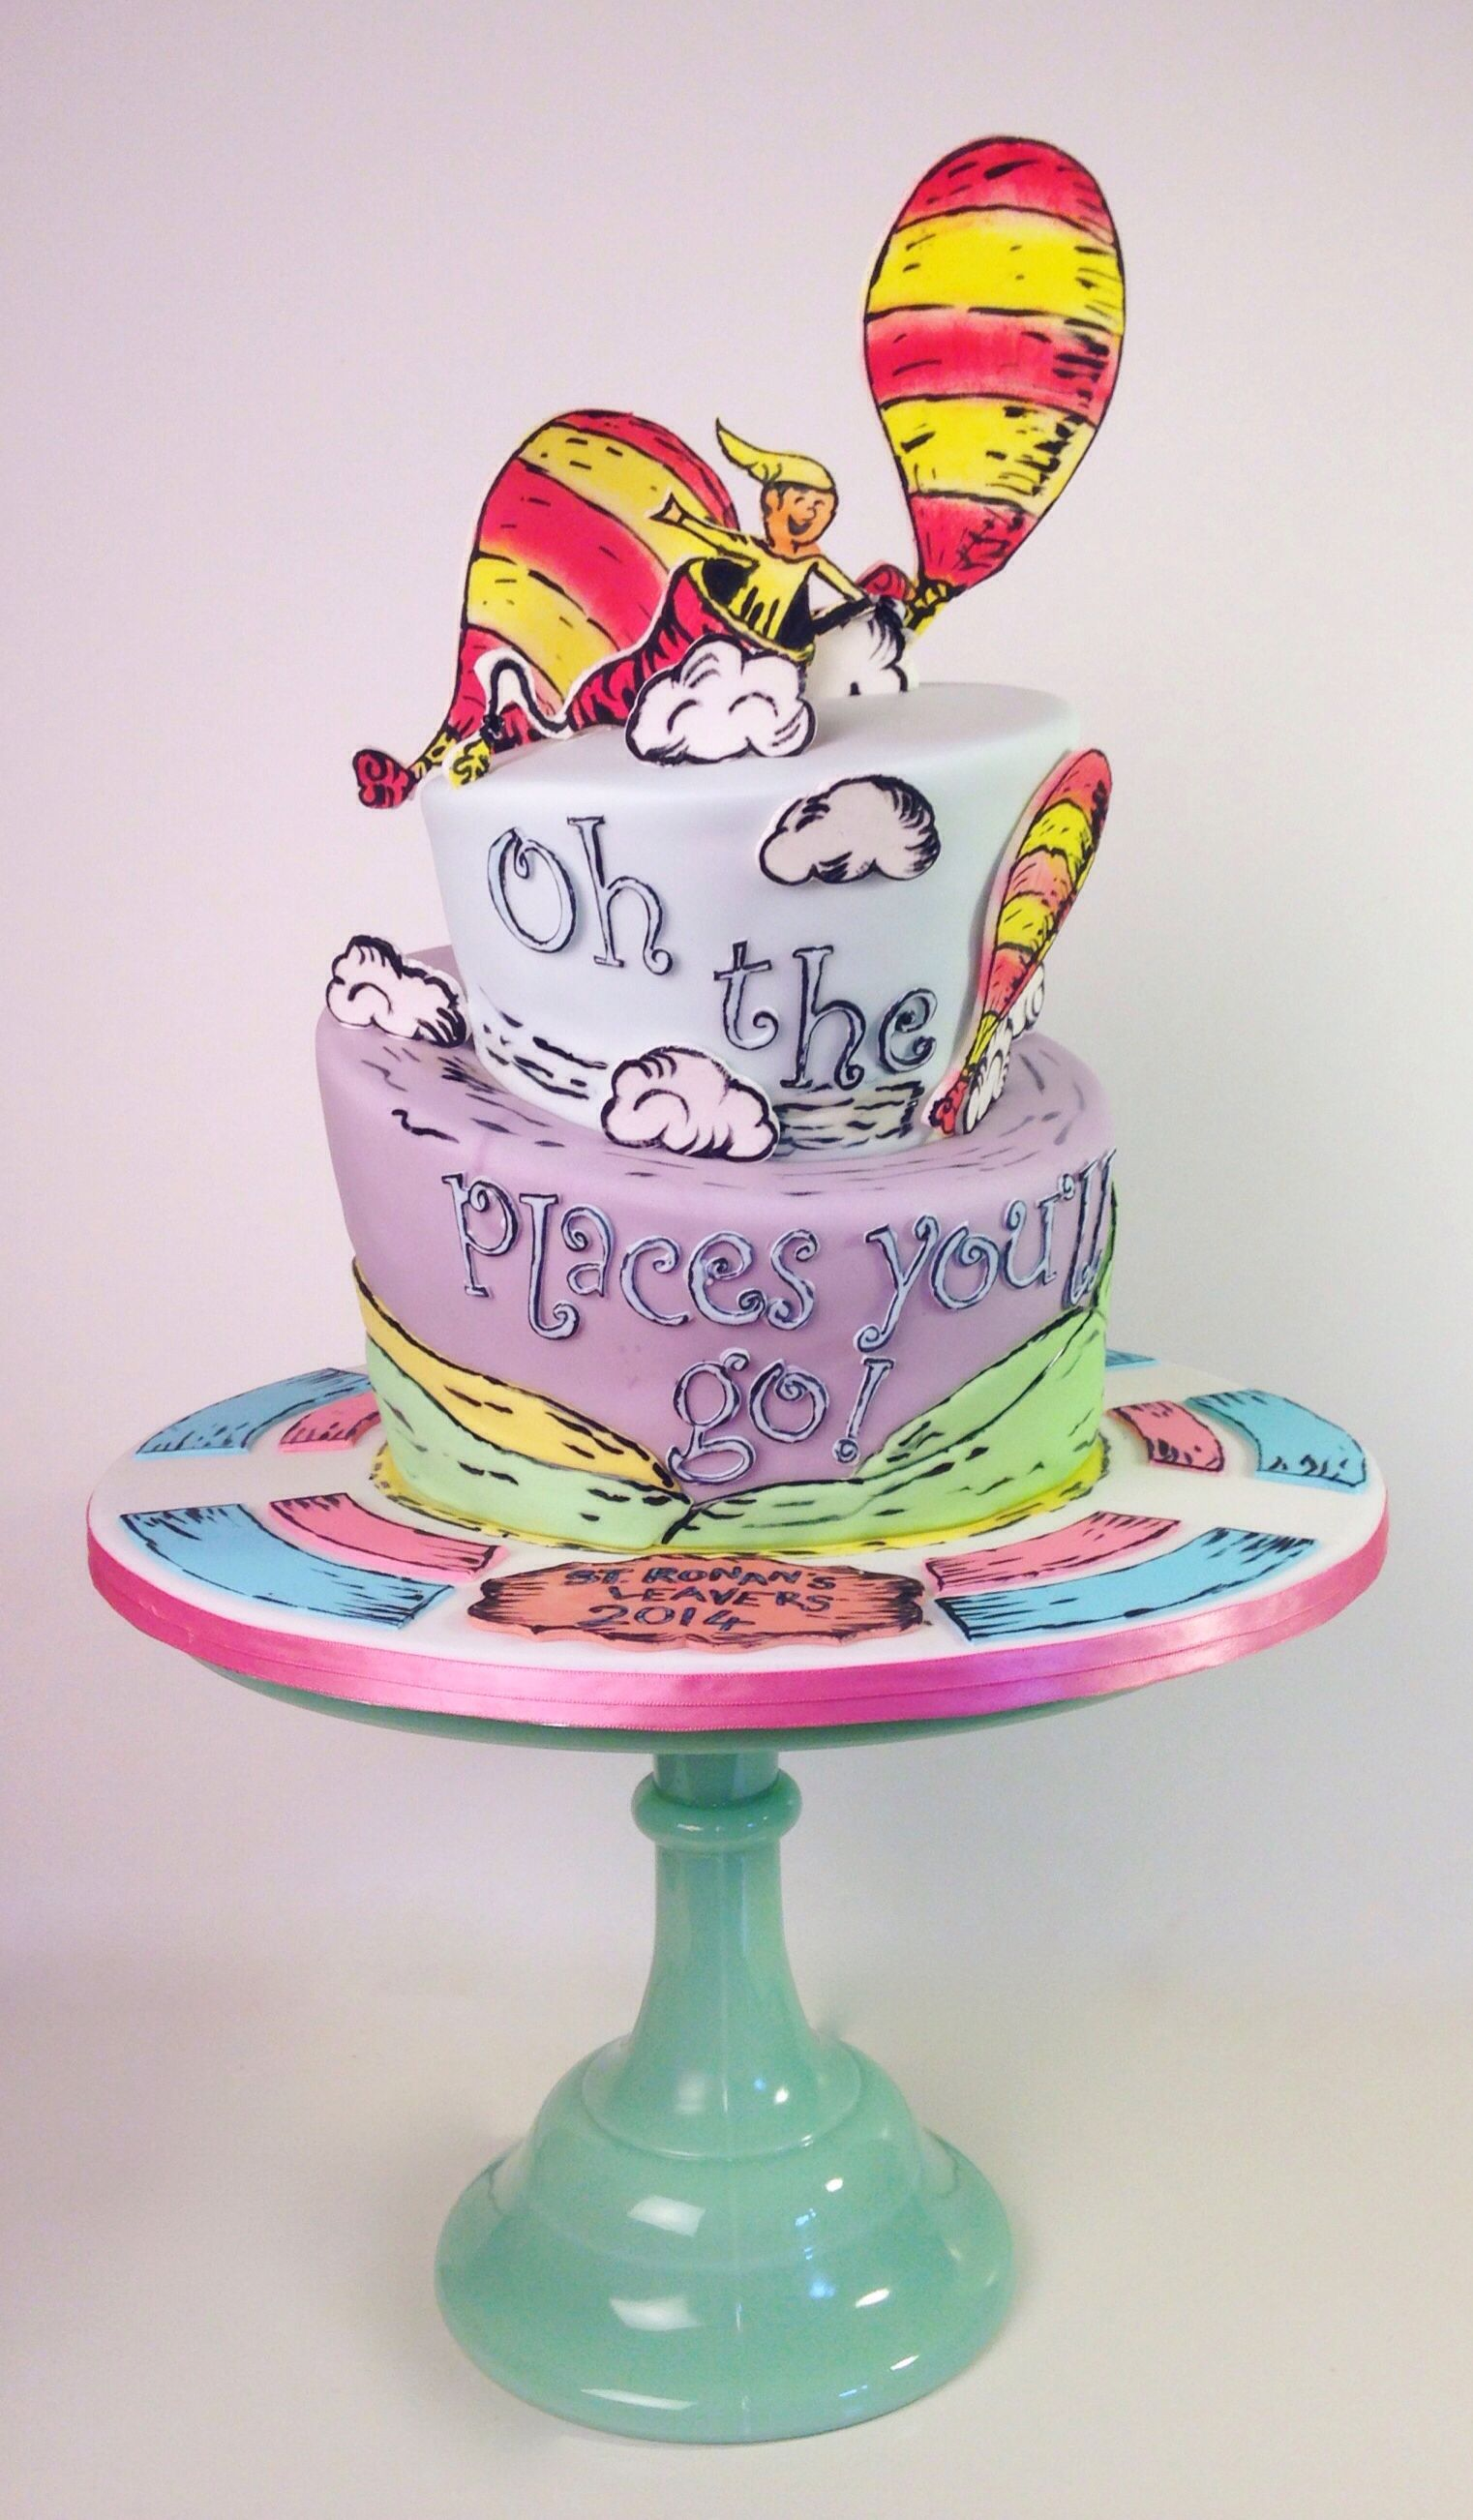 Oh the places you'll go - cake by www.flossiepopscakery.co.uk